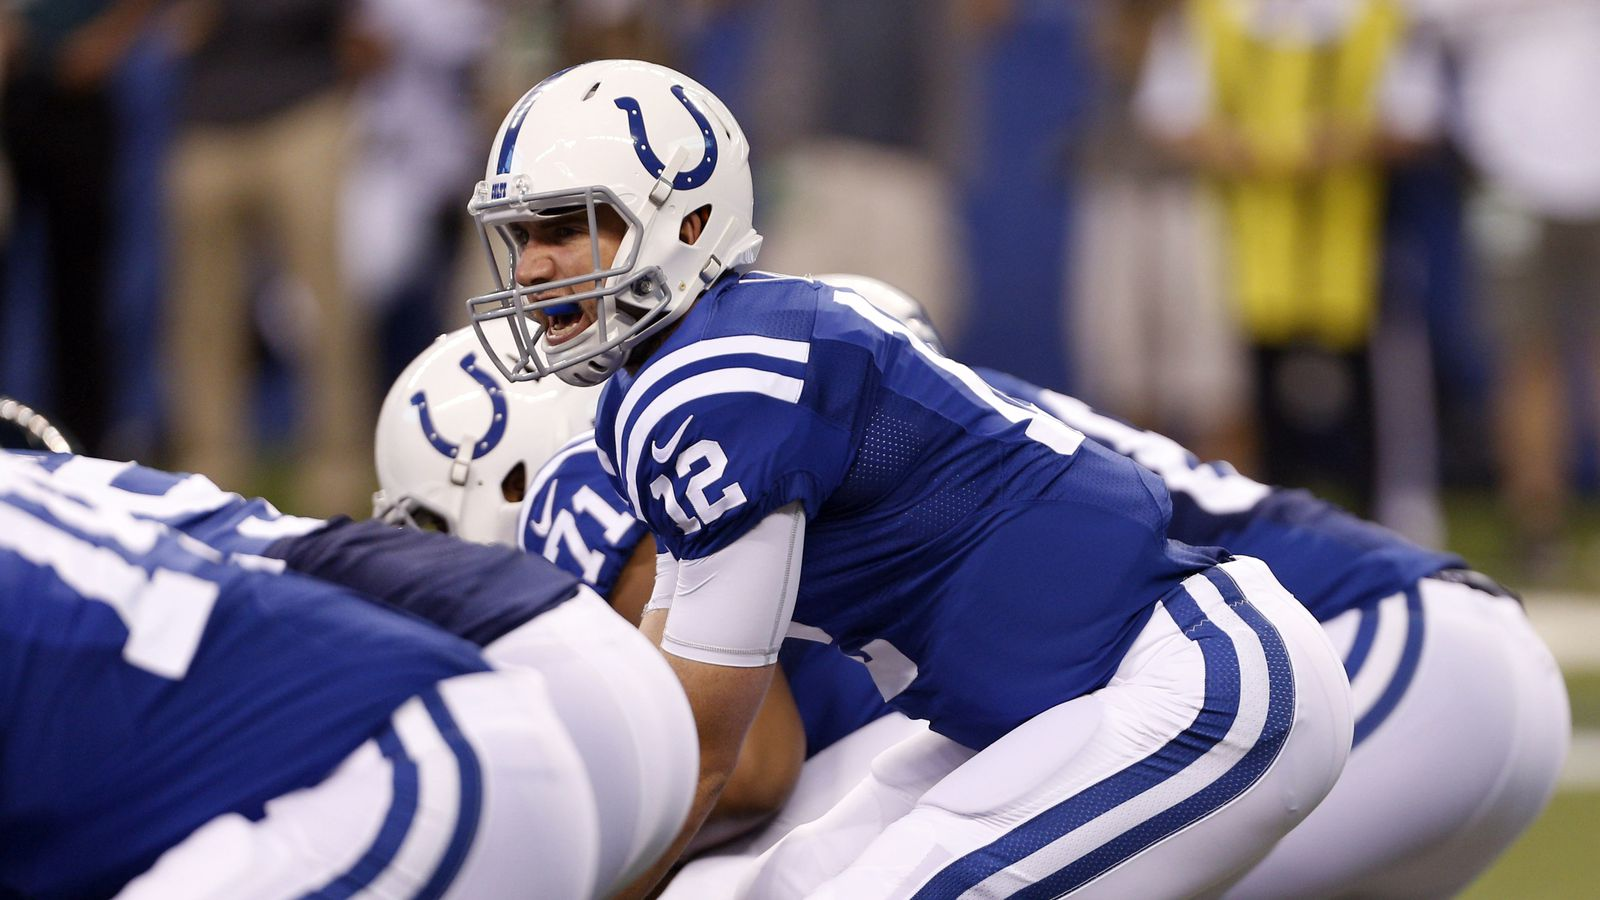 Colts pulled Andrew Luck from game early on Saturday due to offensive line struggles